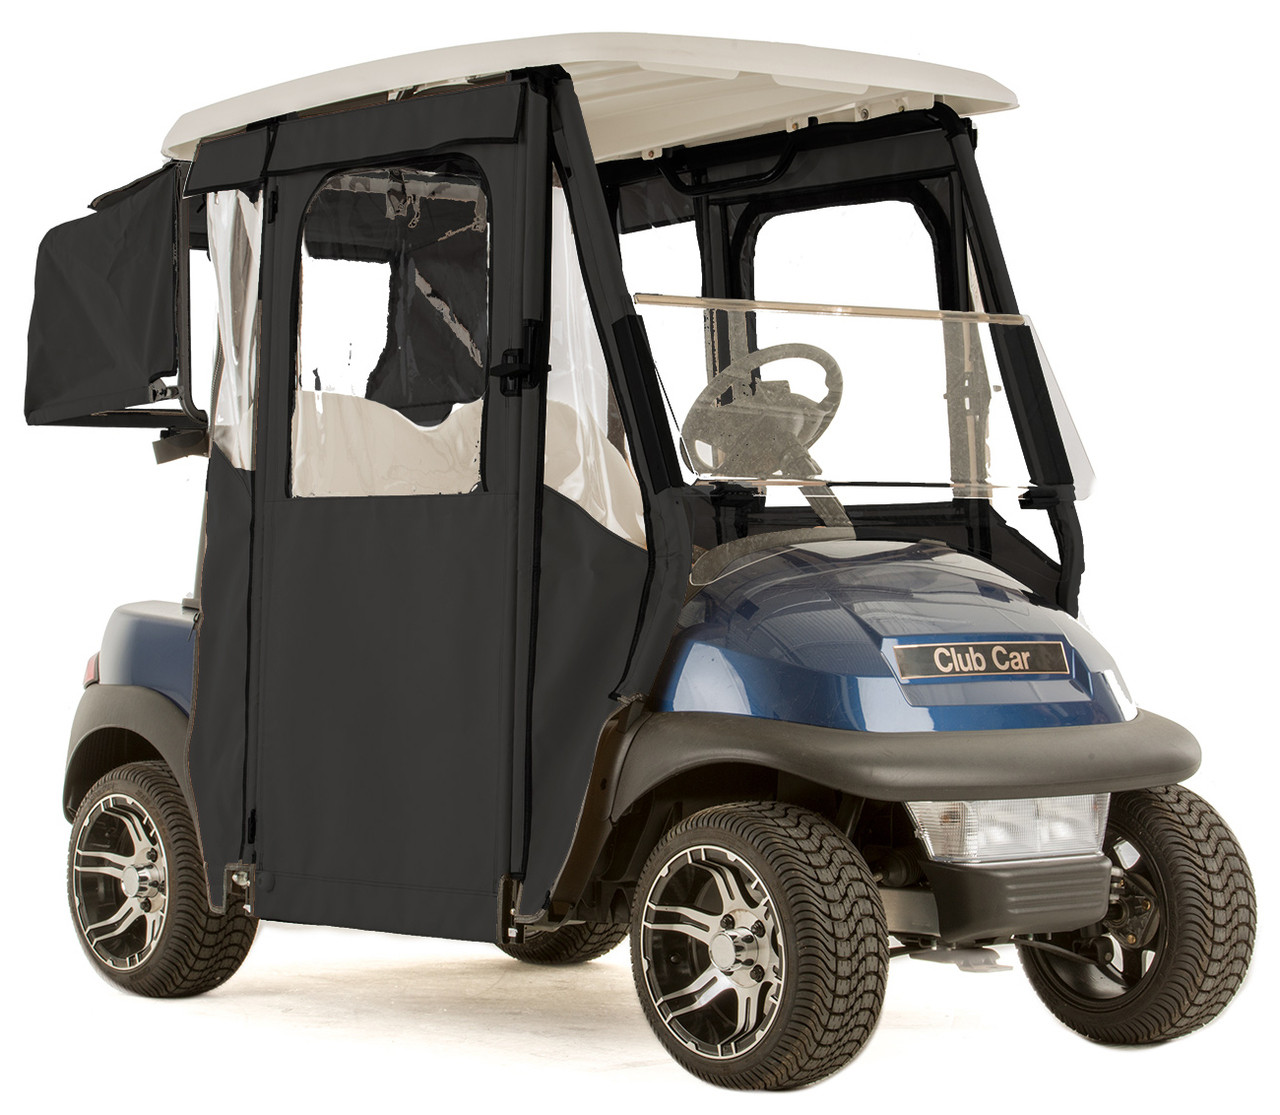 Discover the Best Enclosures for Golf Carts on vinyl golf cart covers, national golf cart covers, yamaha golf cart covers, clear plastic golf cart covers, canvas golf cart covers, golf cart cloth seat covers, sam's club golf cart covers, discount golf cart covers, custom golf cart covers, club car golf cart rain covers, 3 sided golf cart covers, star golf cart covers, rail golf cart covers, golf cart canopy covers, buggies unlimited golf cart covers, door works golf cart covers, classic golf cart covers, eevelle golf cart covers, harley golf cart seat covers, portable golf cart covers,